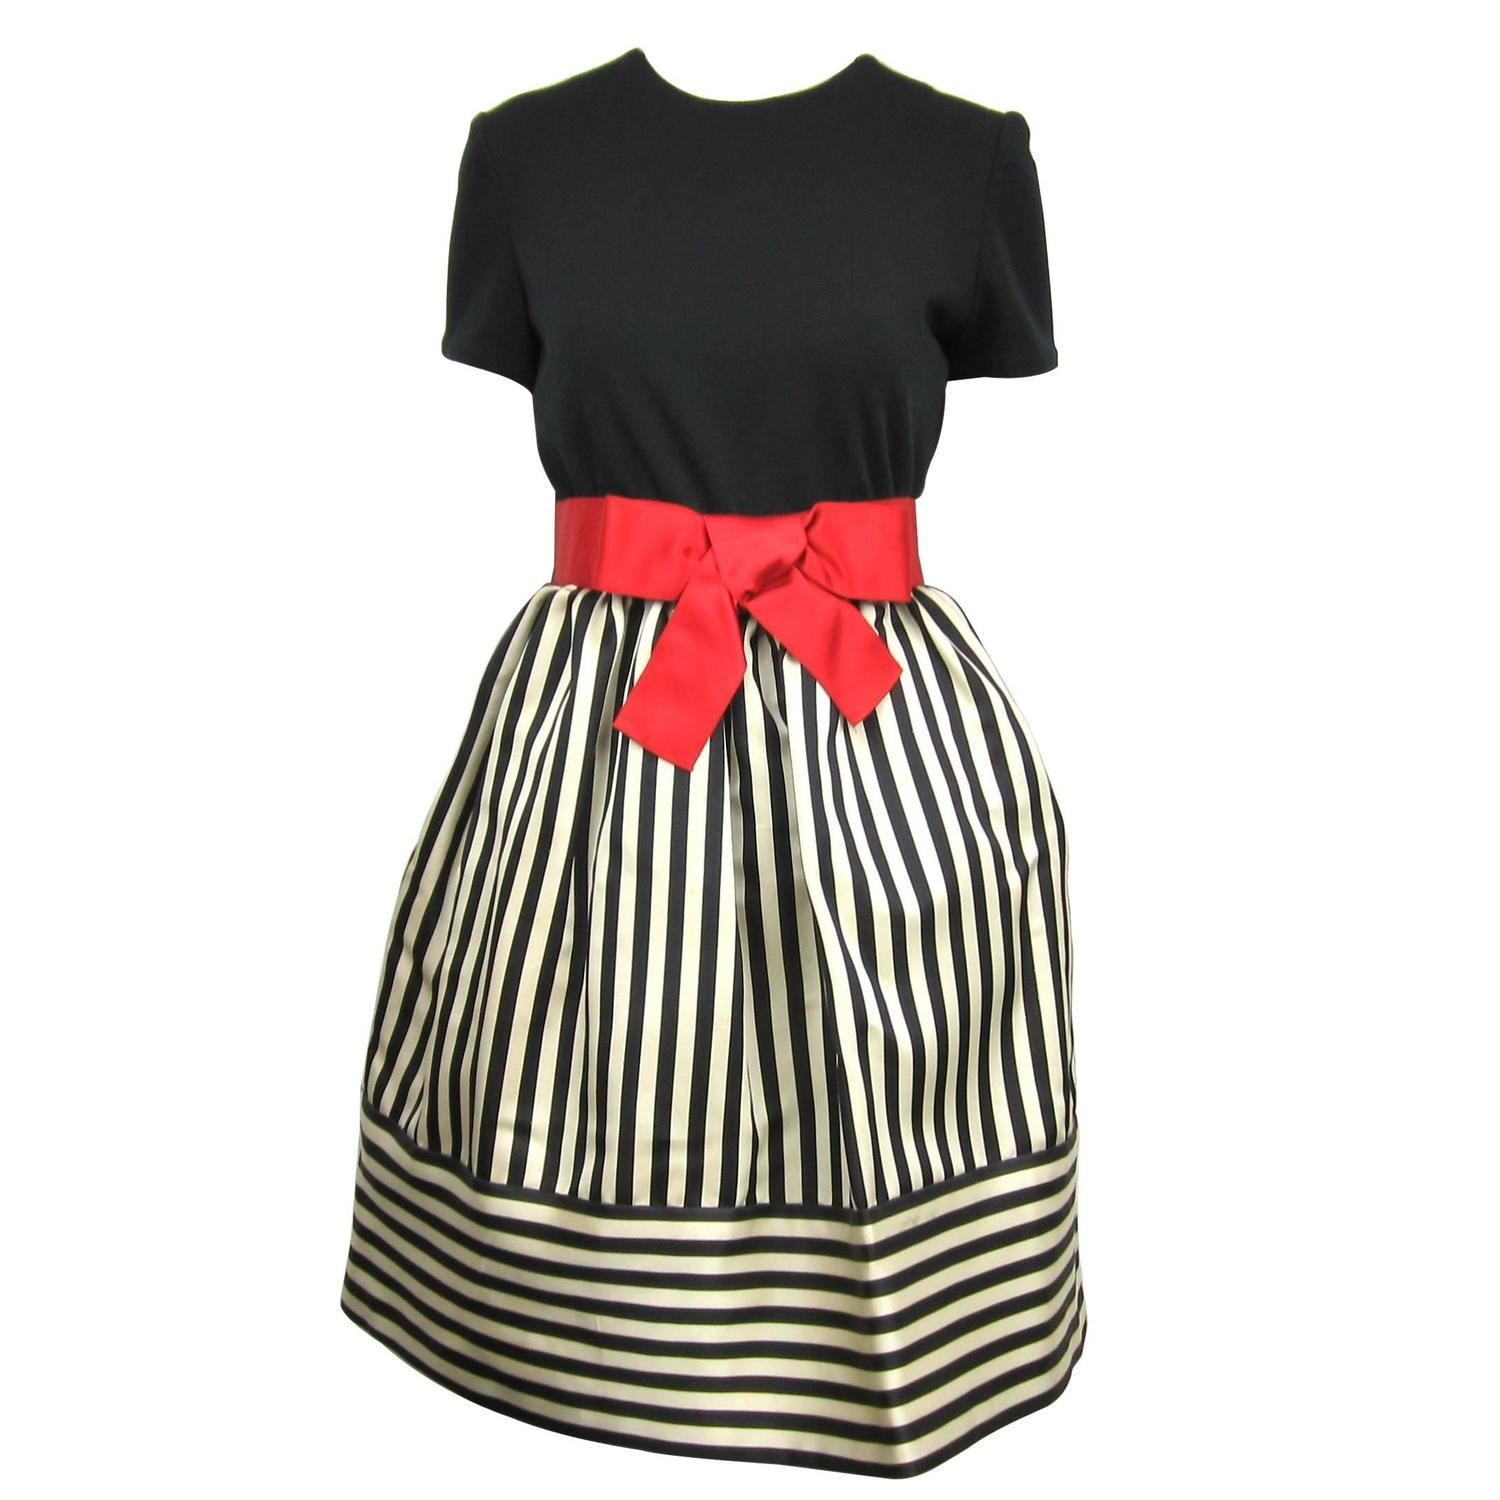 Black and red striped babydoll dress